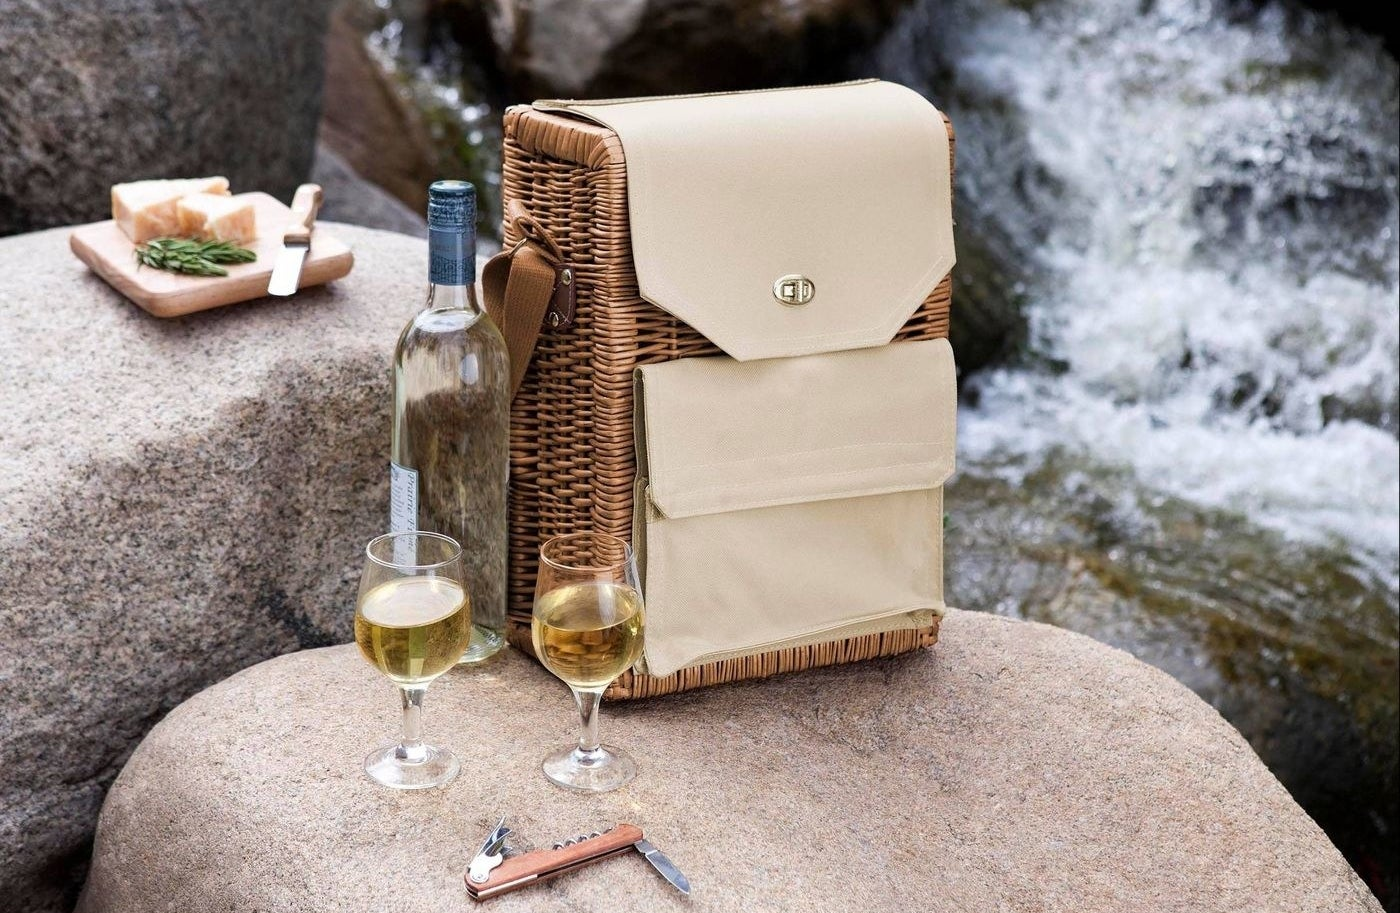 tan and wicker picnic basket